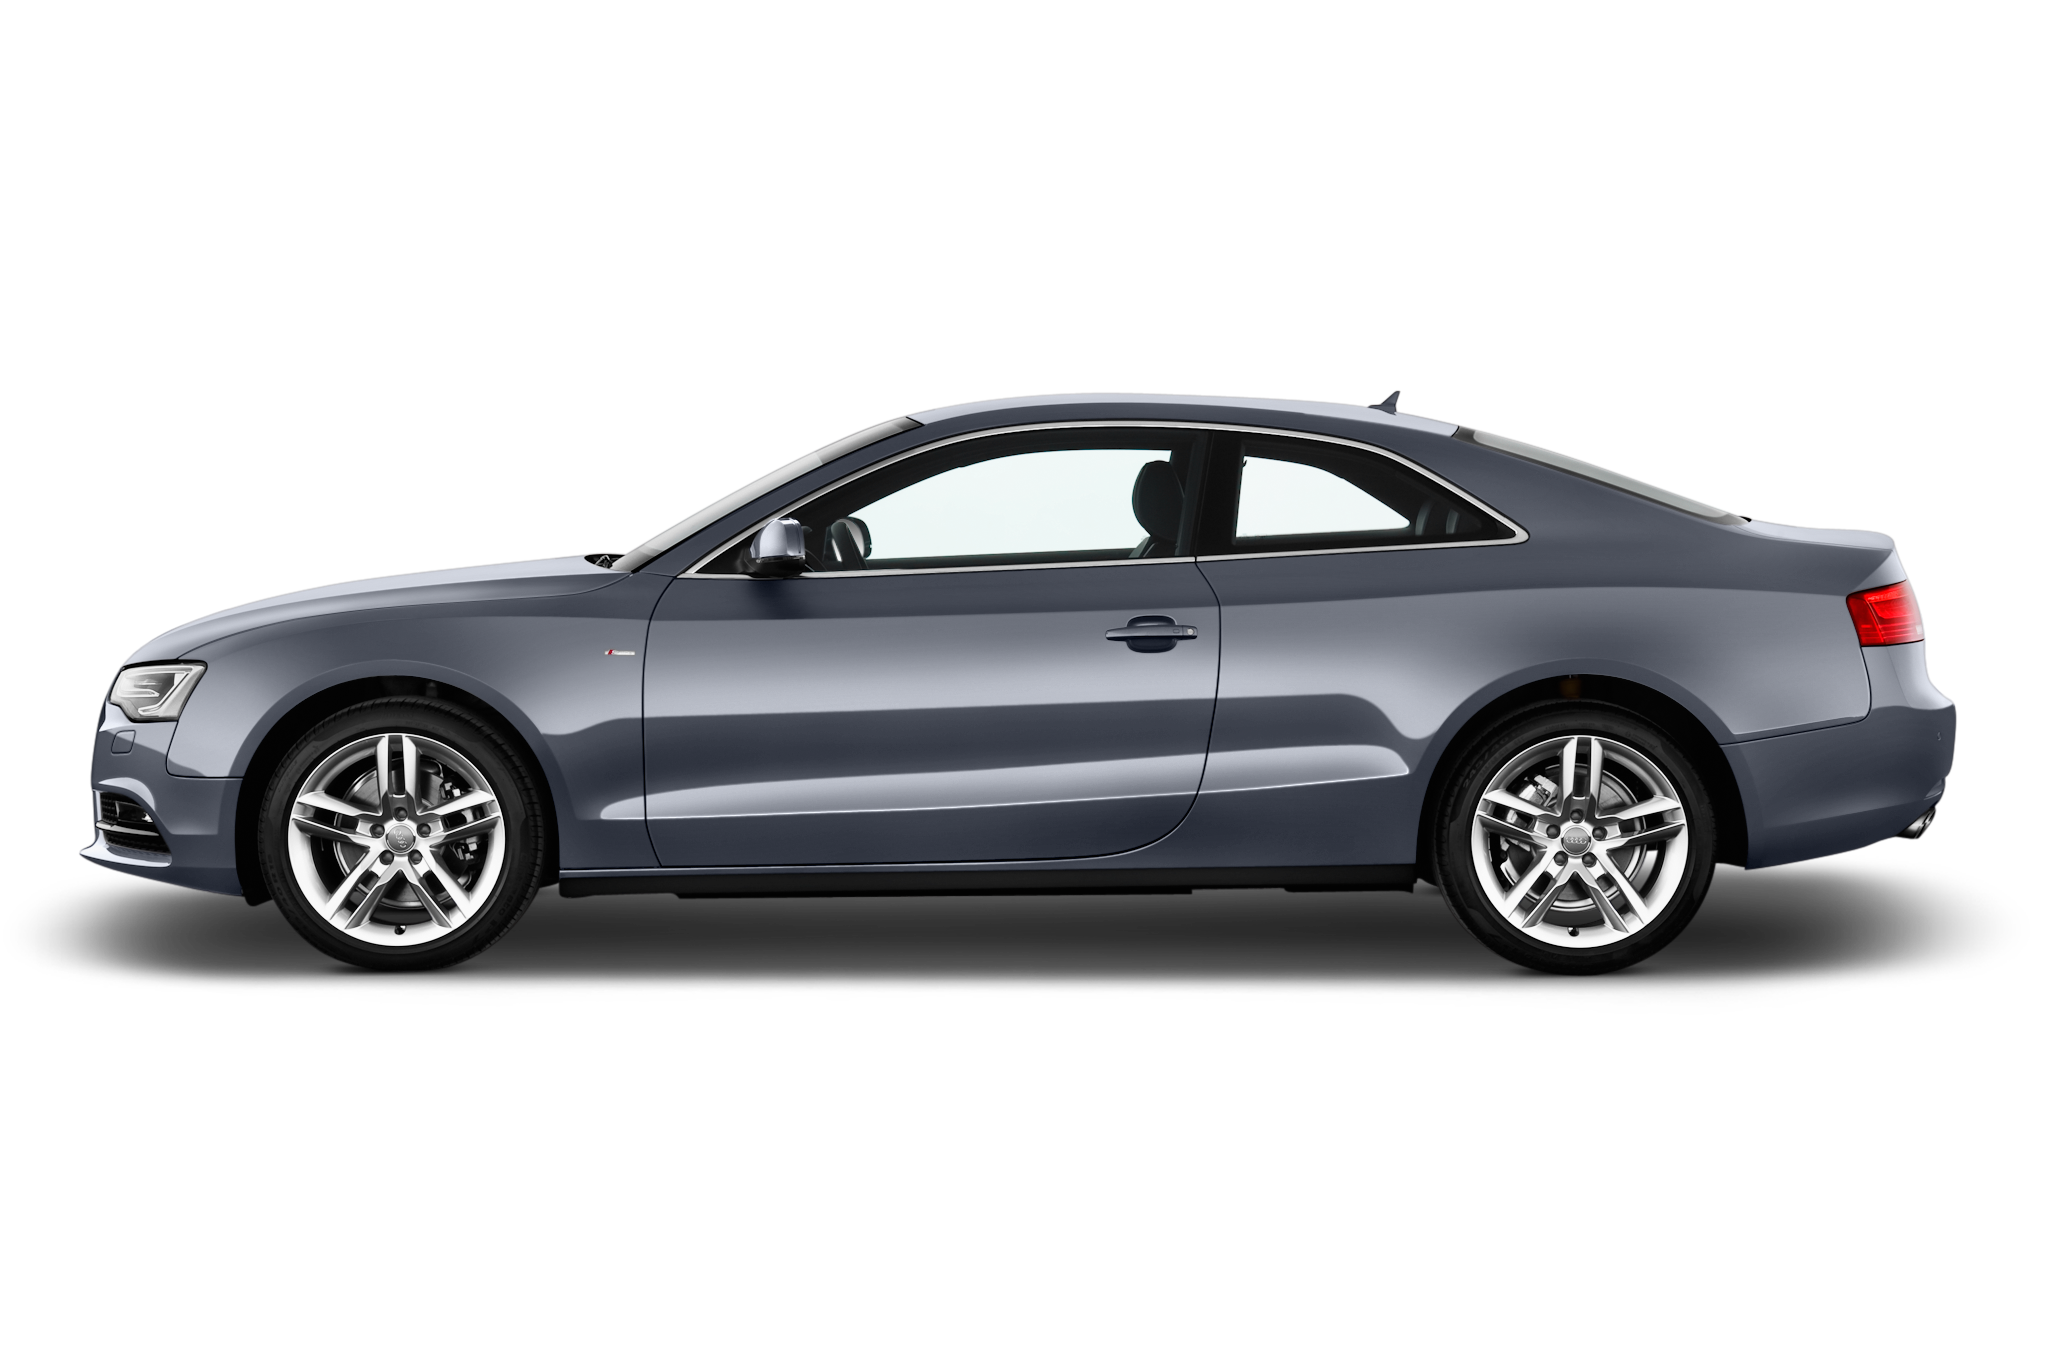 next generation audi a5 and s5 spied with sleeker styling. Black Bedroom Furniture Sets. Home Design Ideas